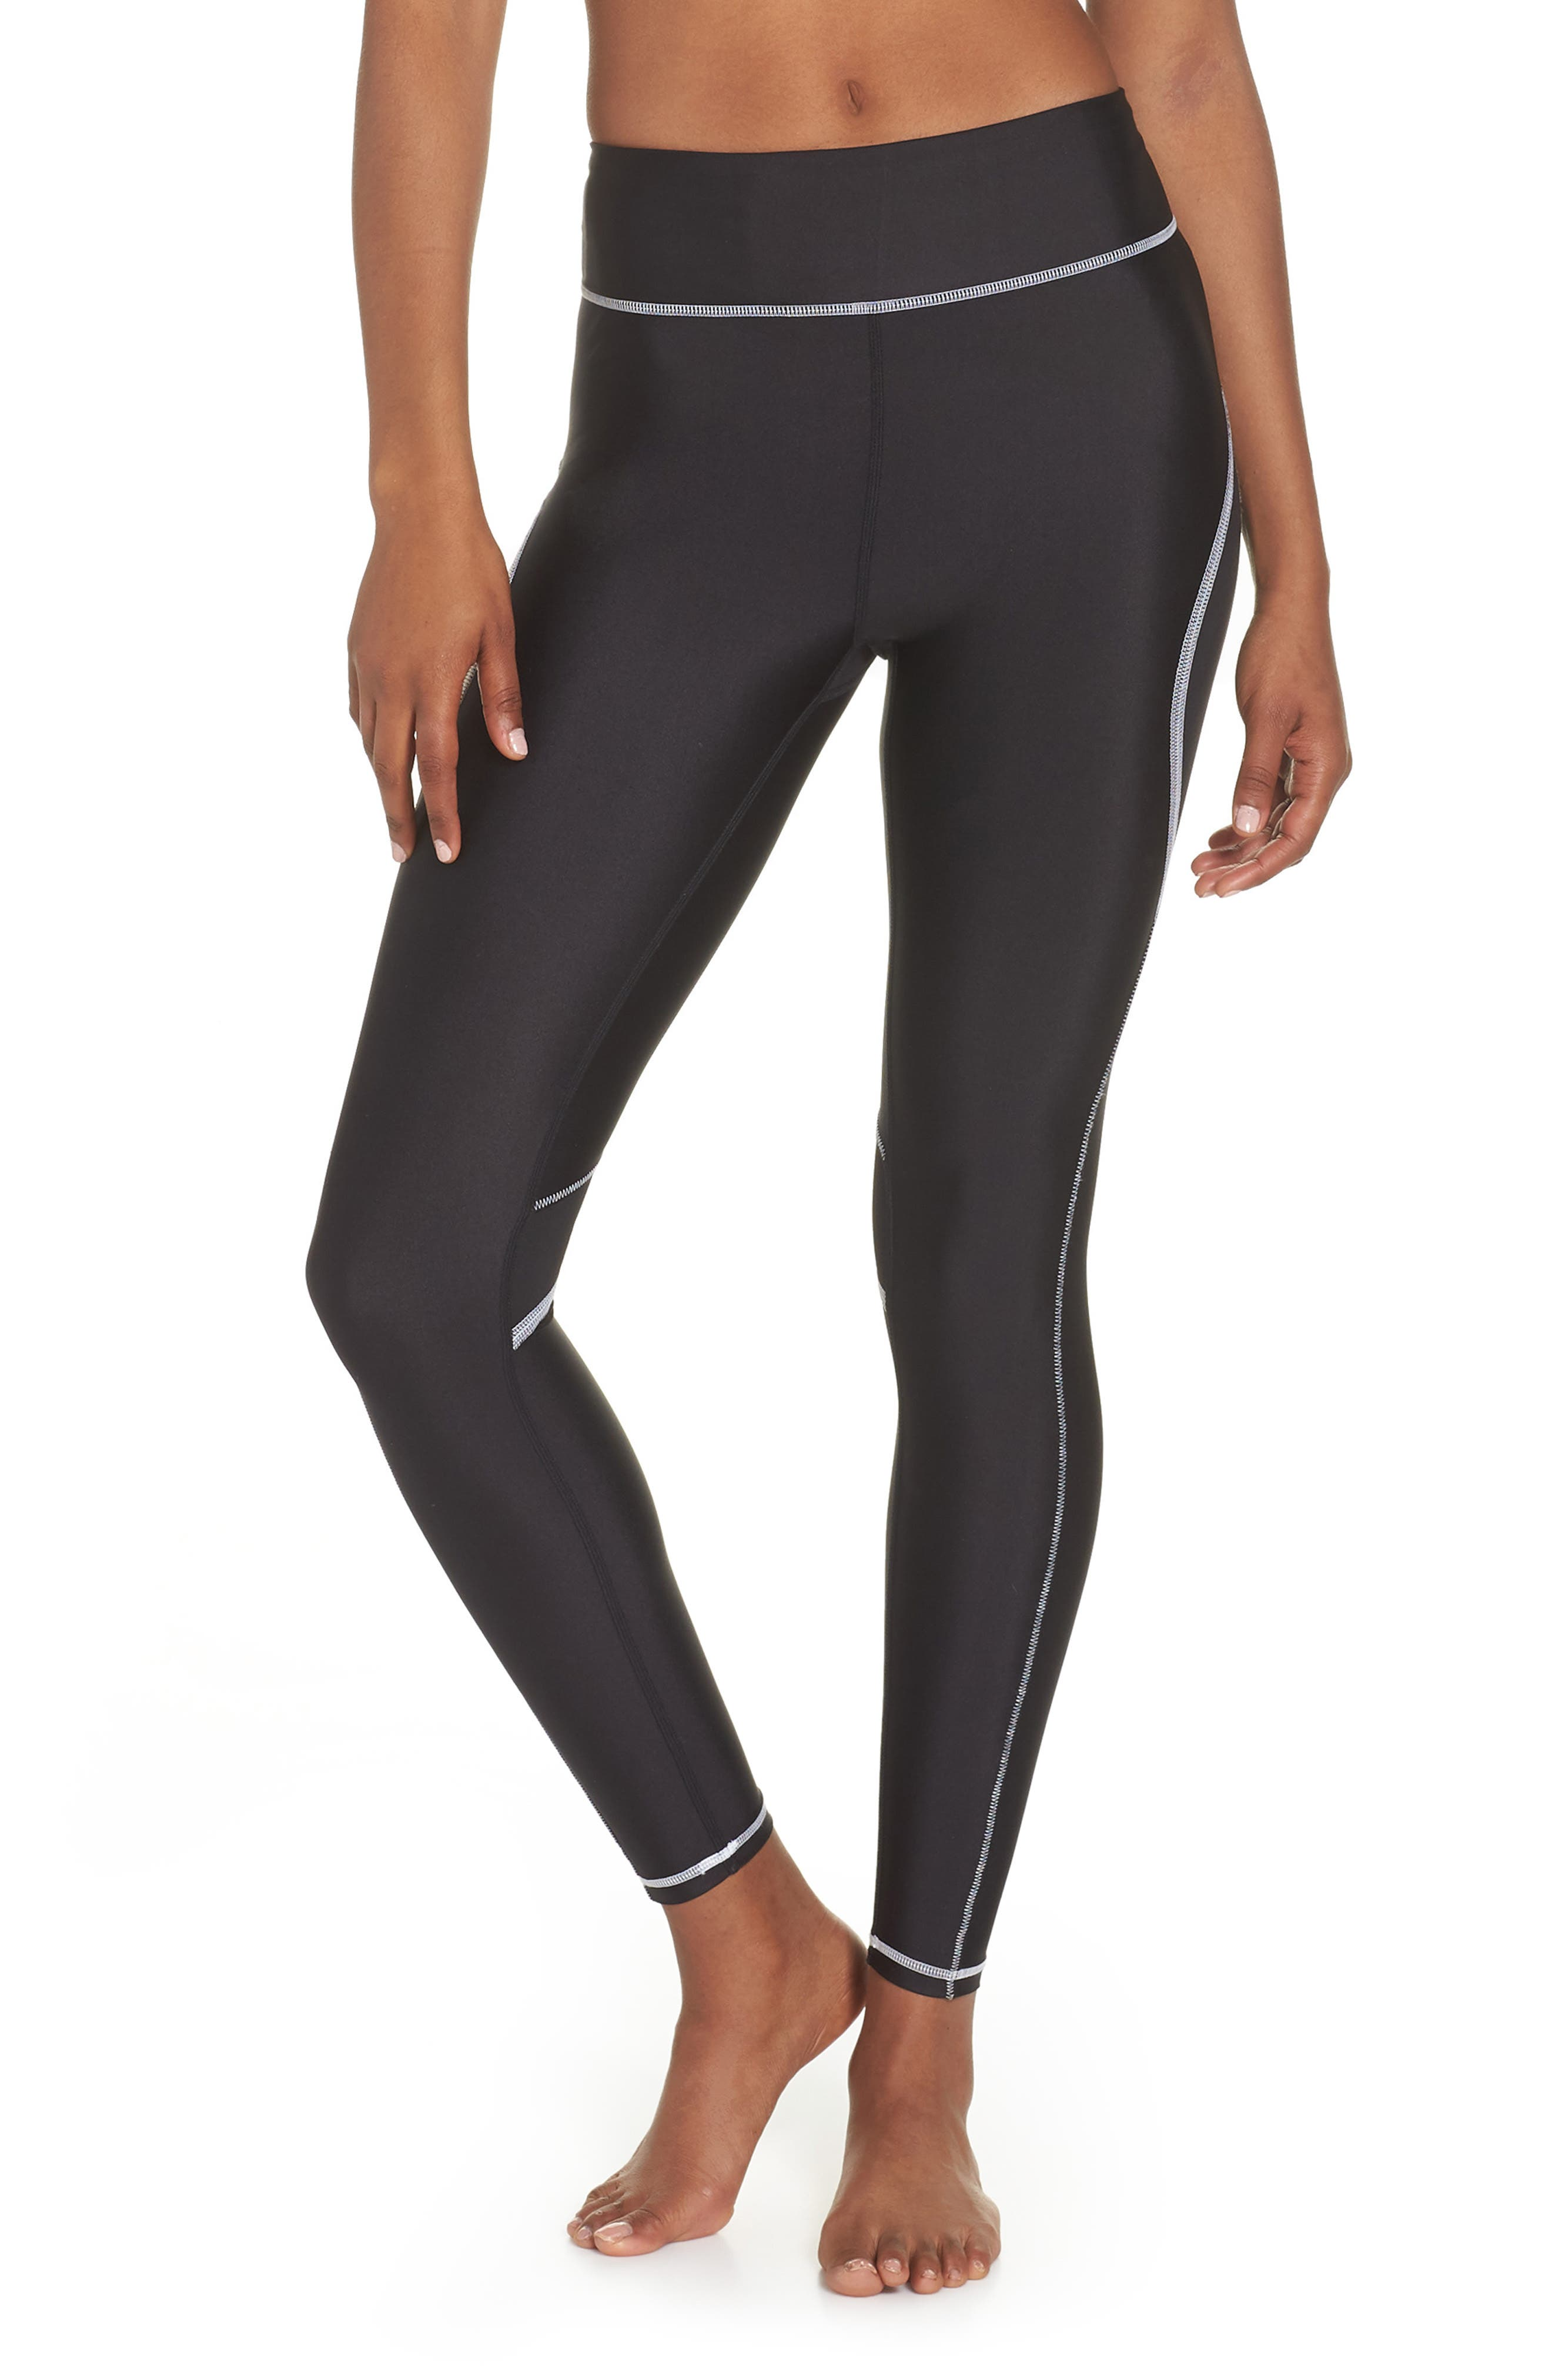 Surf Tights,                             Main thumbnail 1, color,                             BLACK/ WHITE